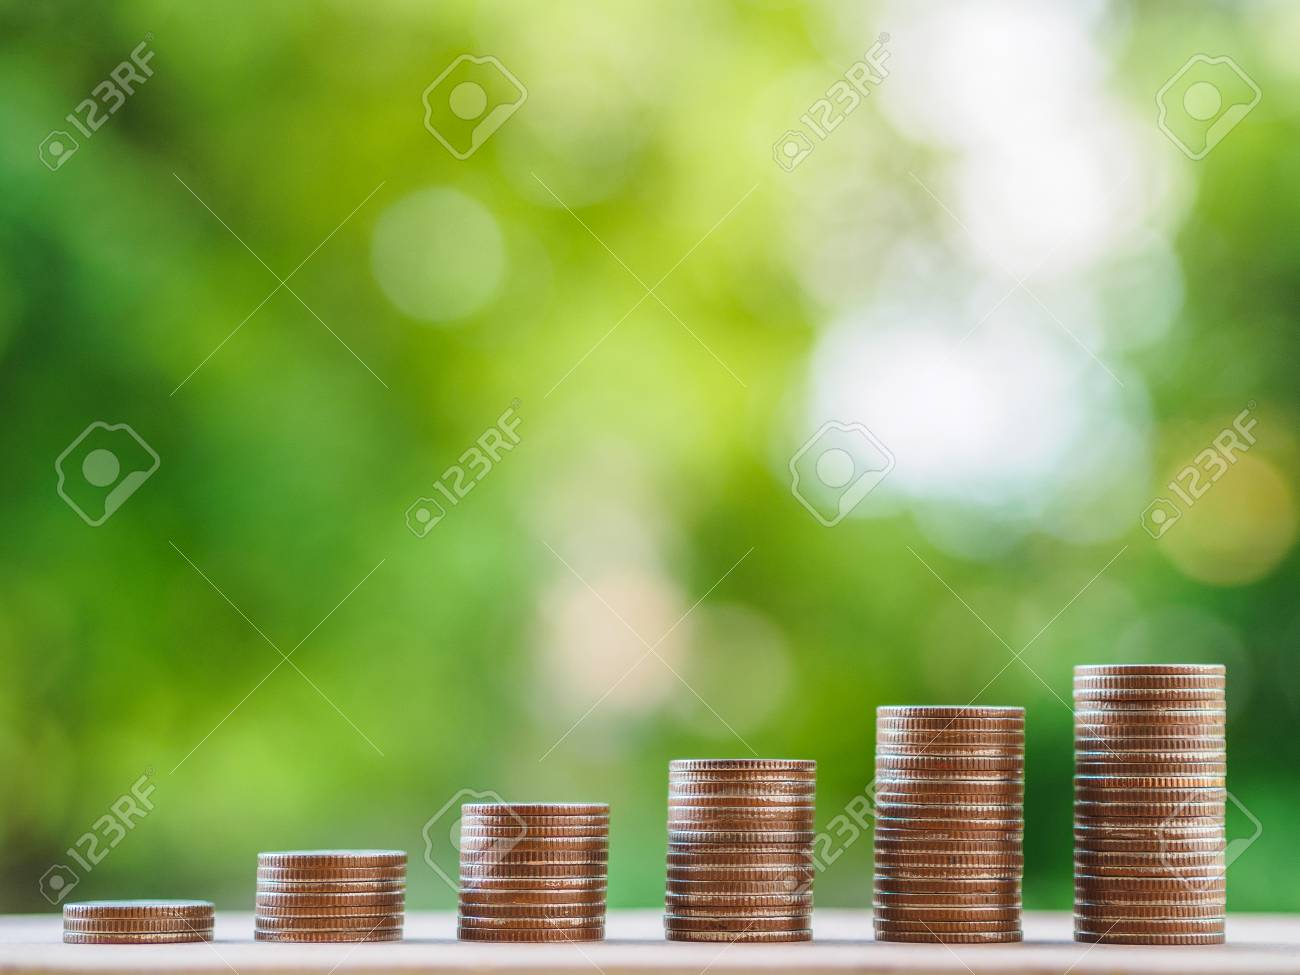 Saving money concept. growing business concept. money coin stack on the table on bokeh background. - 106388103